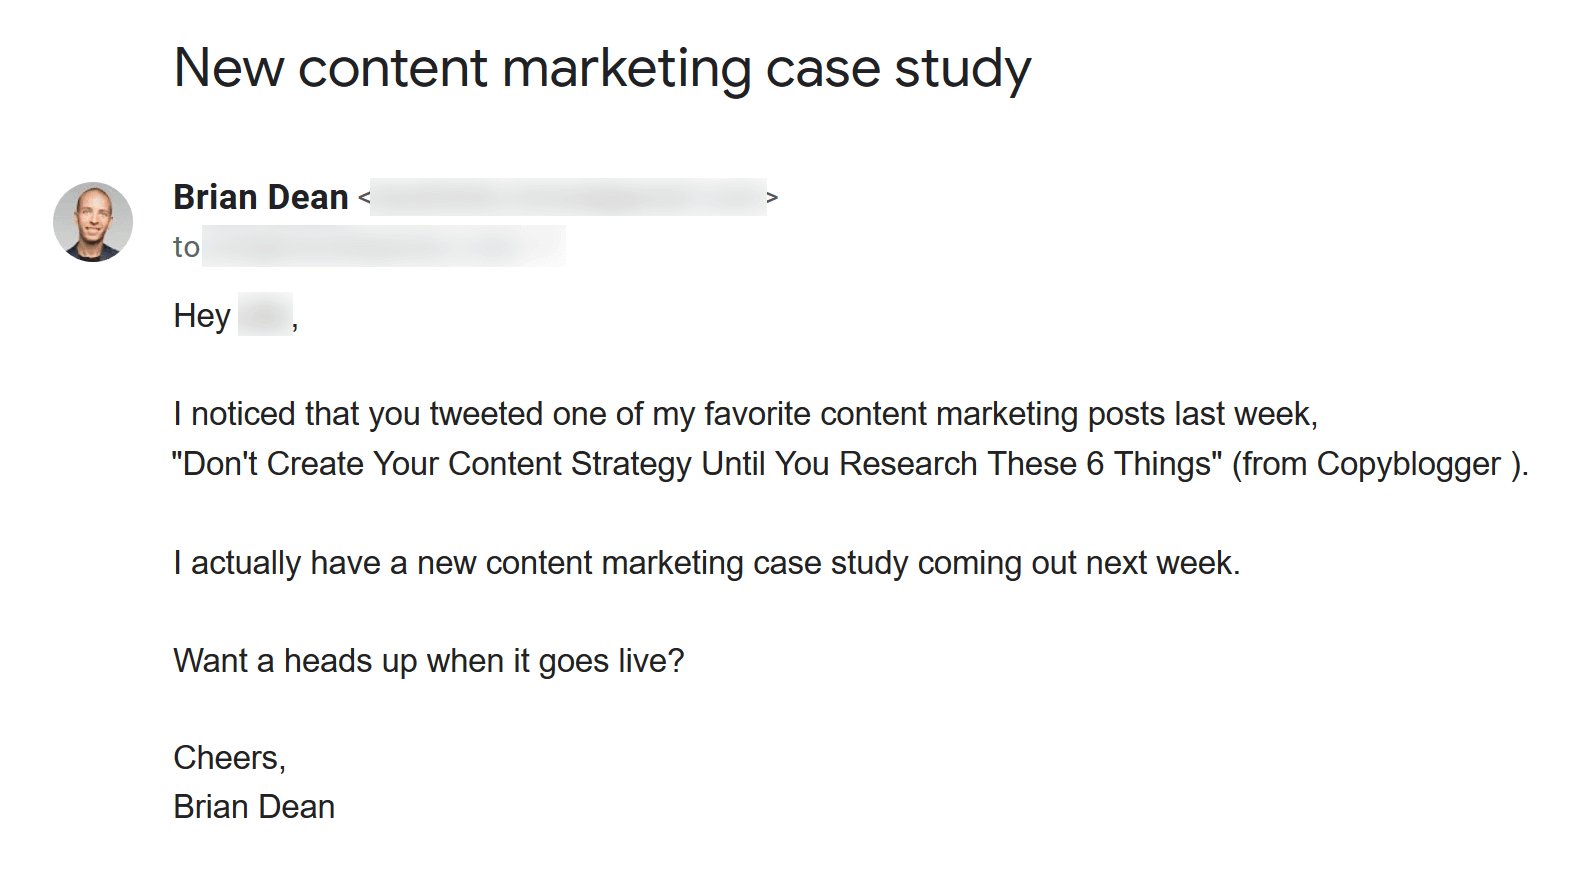 Very personalized outreach email